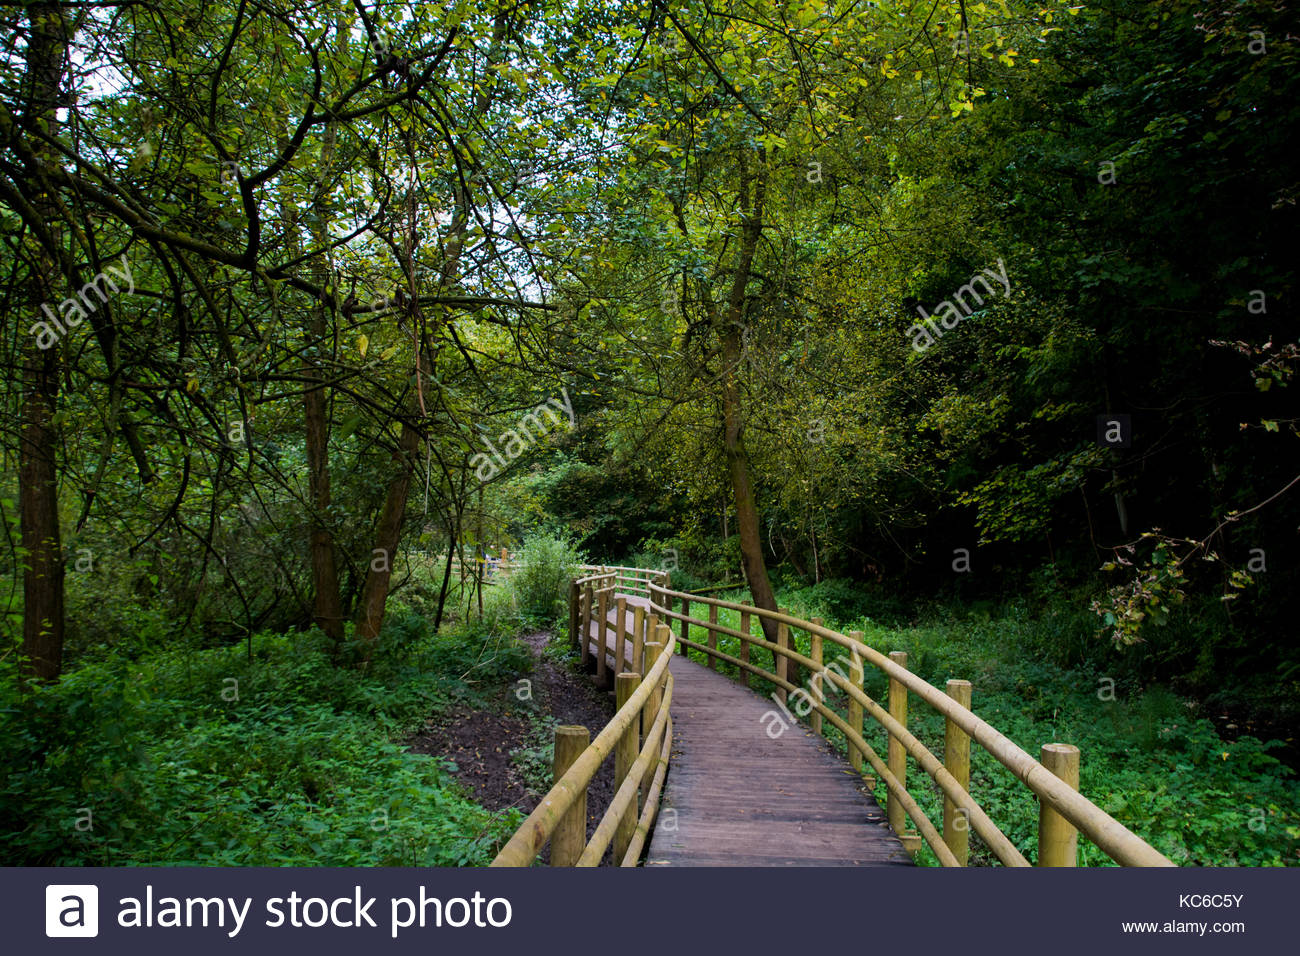 Wepre park, North Wales - Stock Image